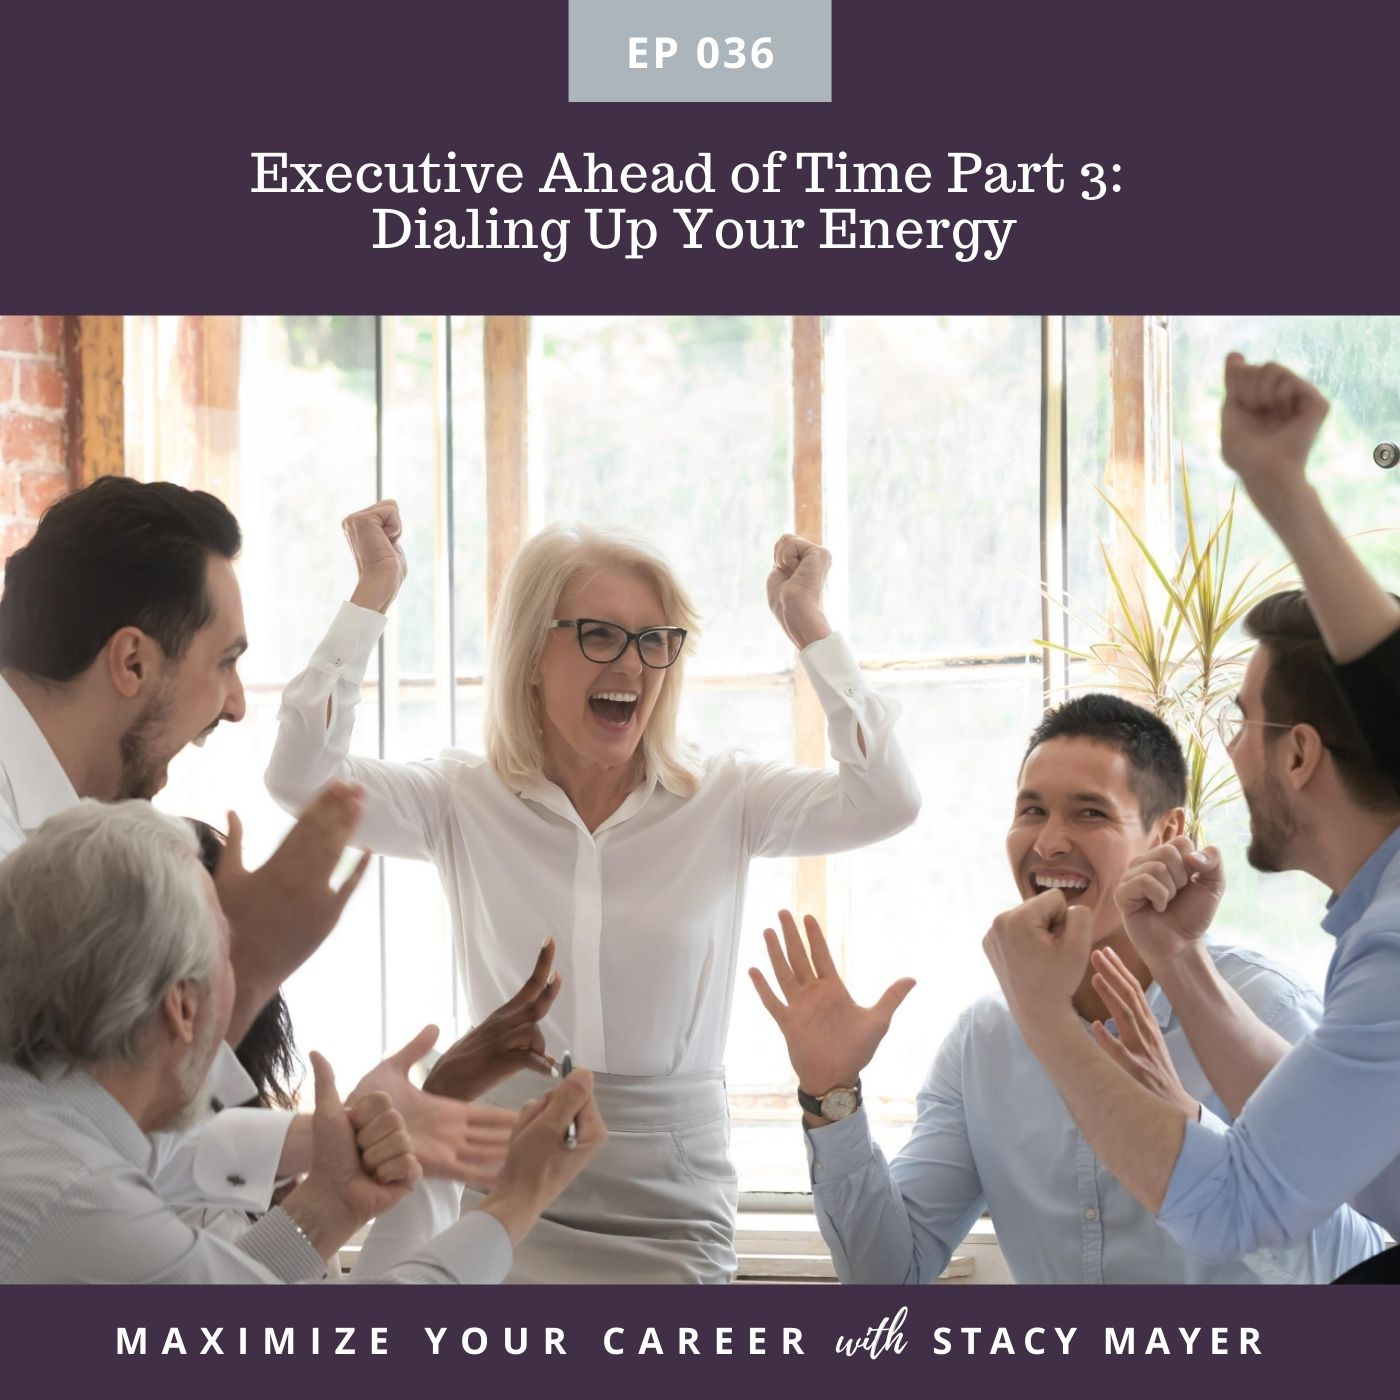 Episode art - Executive Ahead of Time Part 3 Dialing Up Your Energy